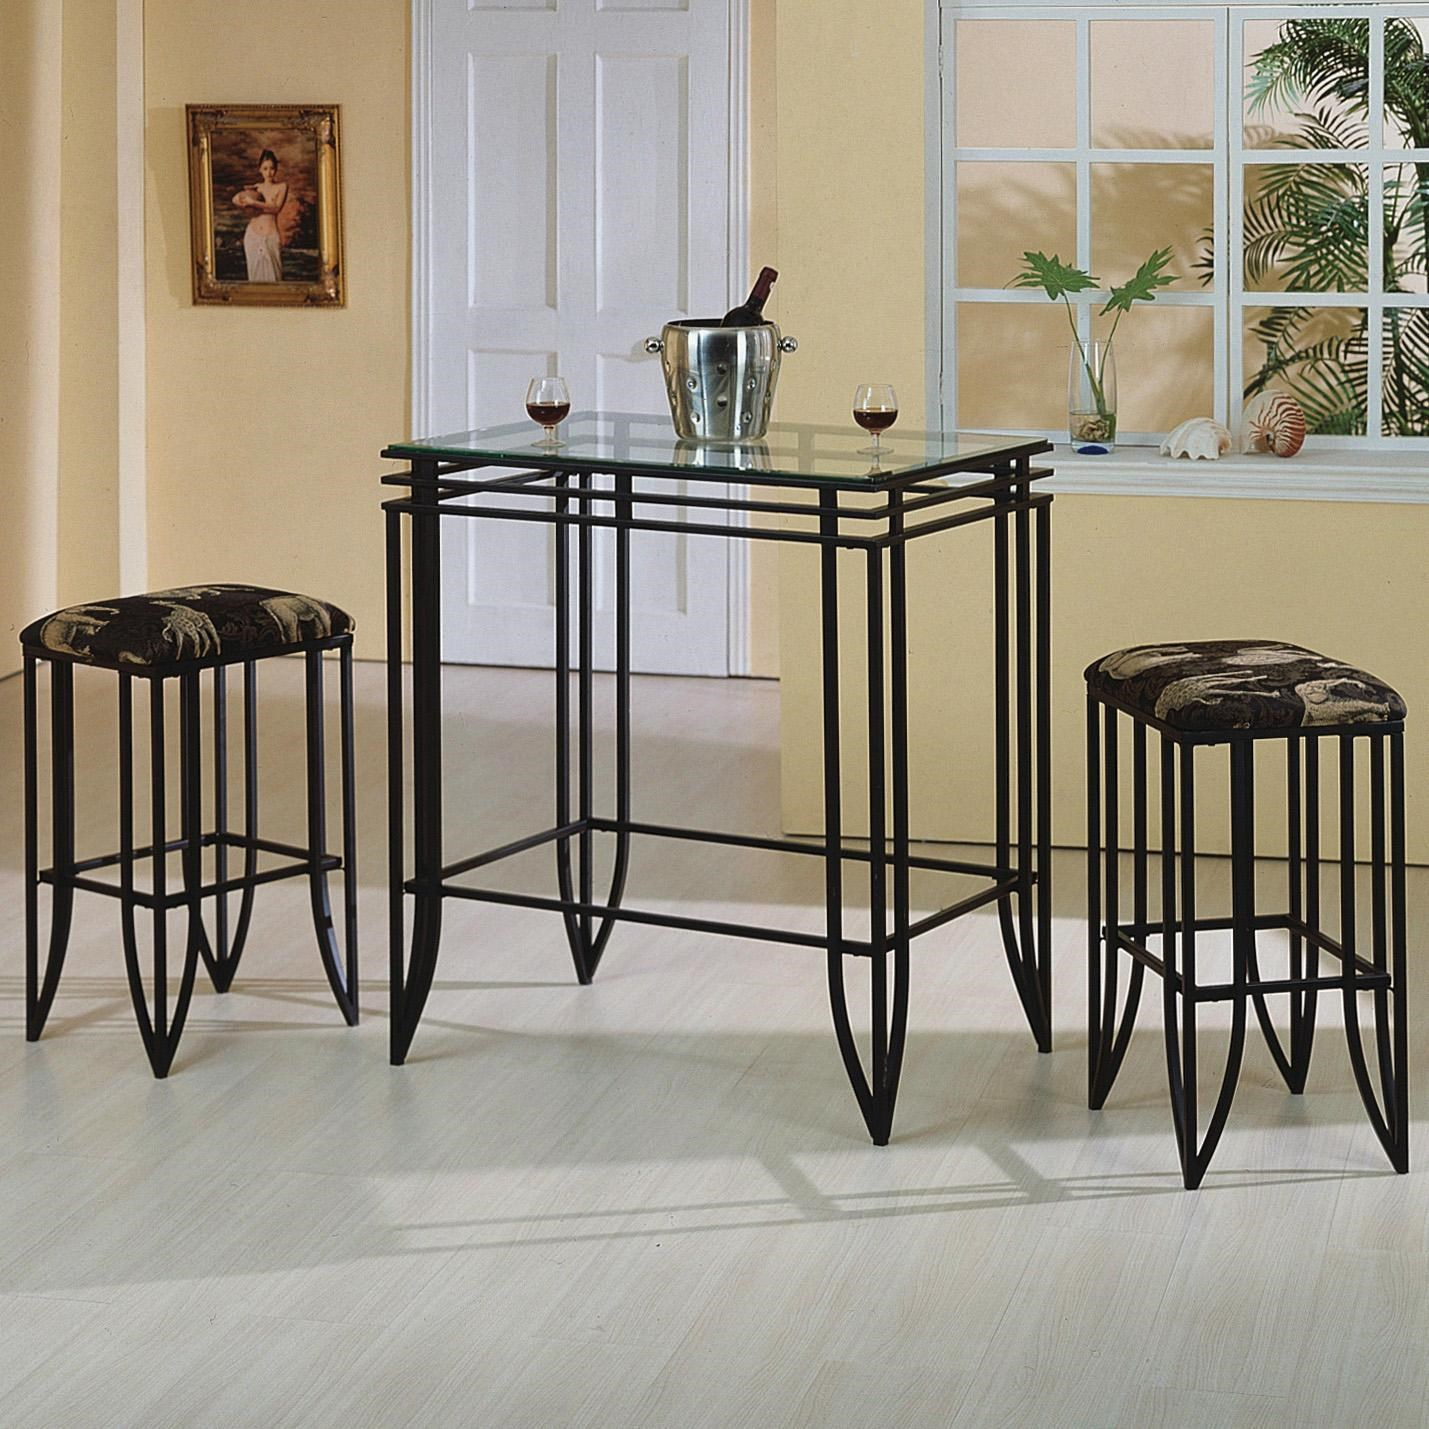 Matrix 1177SET AN 3 Piece Glass Top Pub Table And Chairs Set By Crown Mark